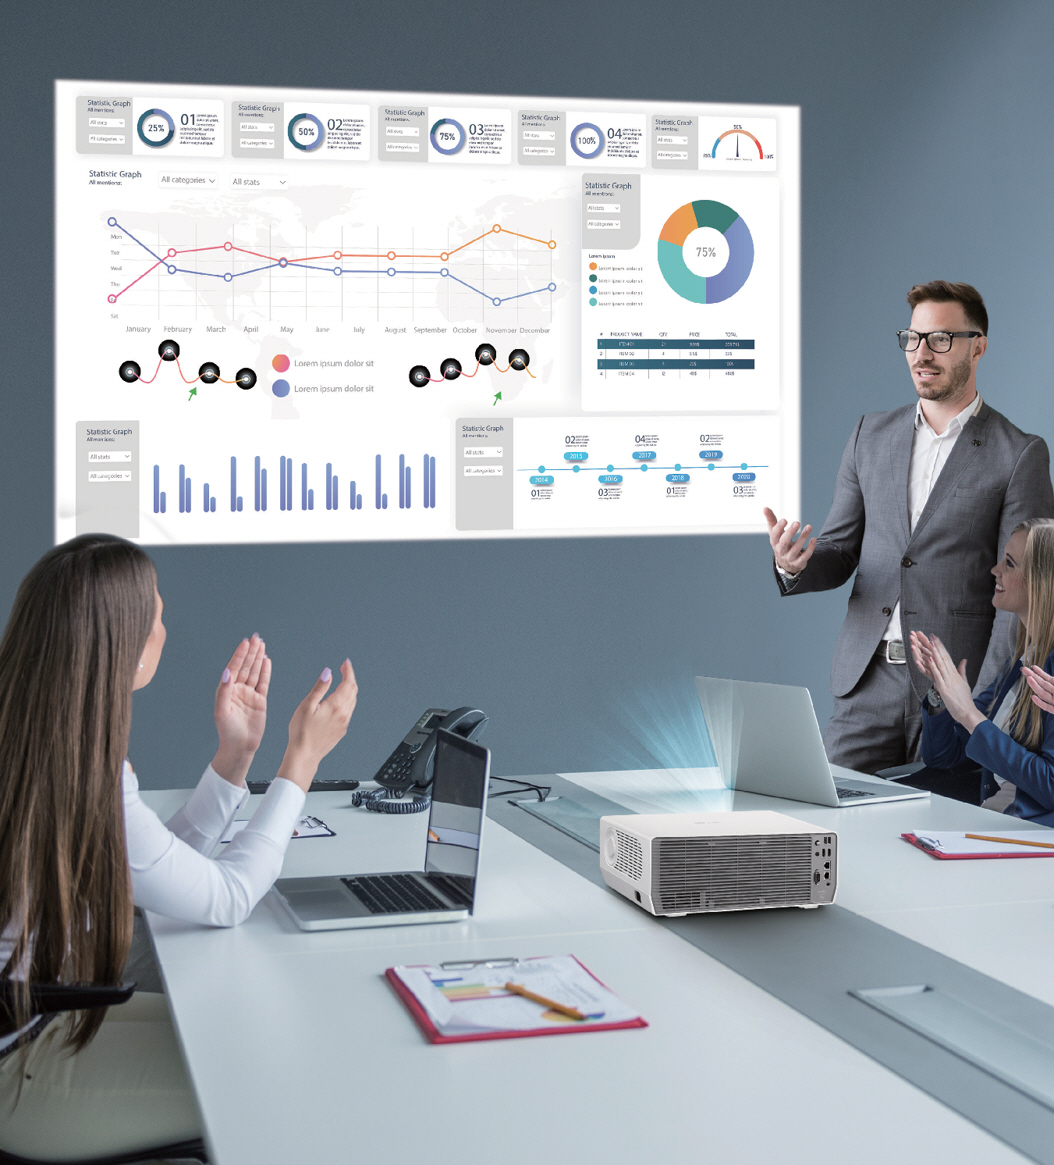 New ProBeam Business Projectors From LG Offer Even Greater Convenience And Performance